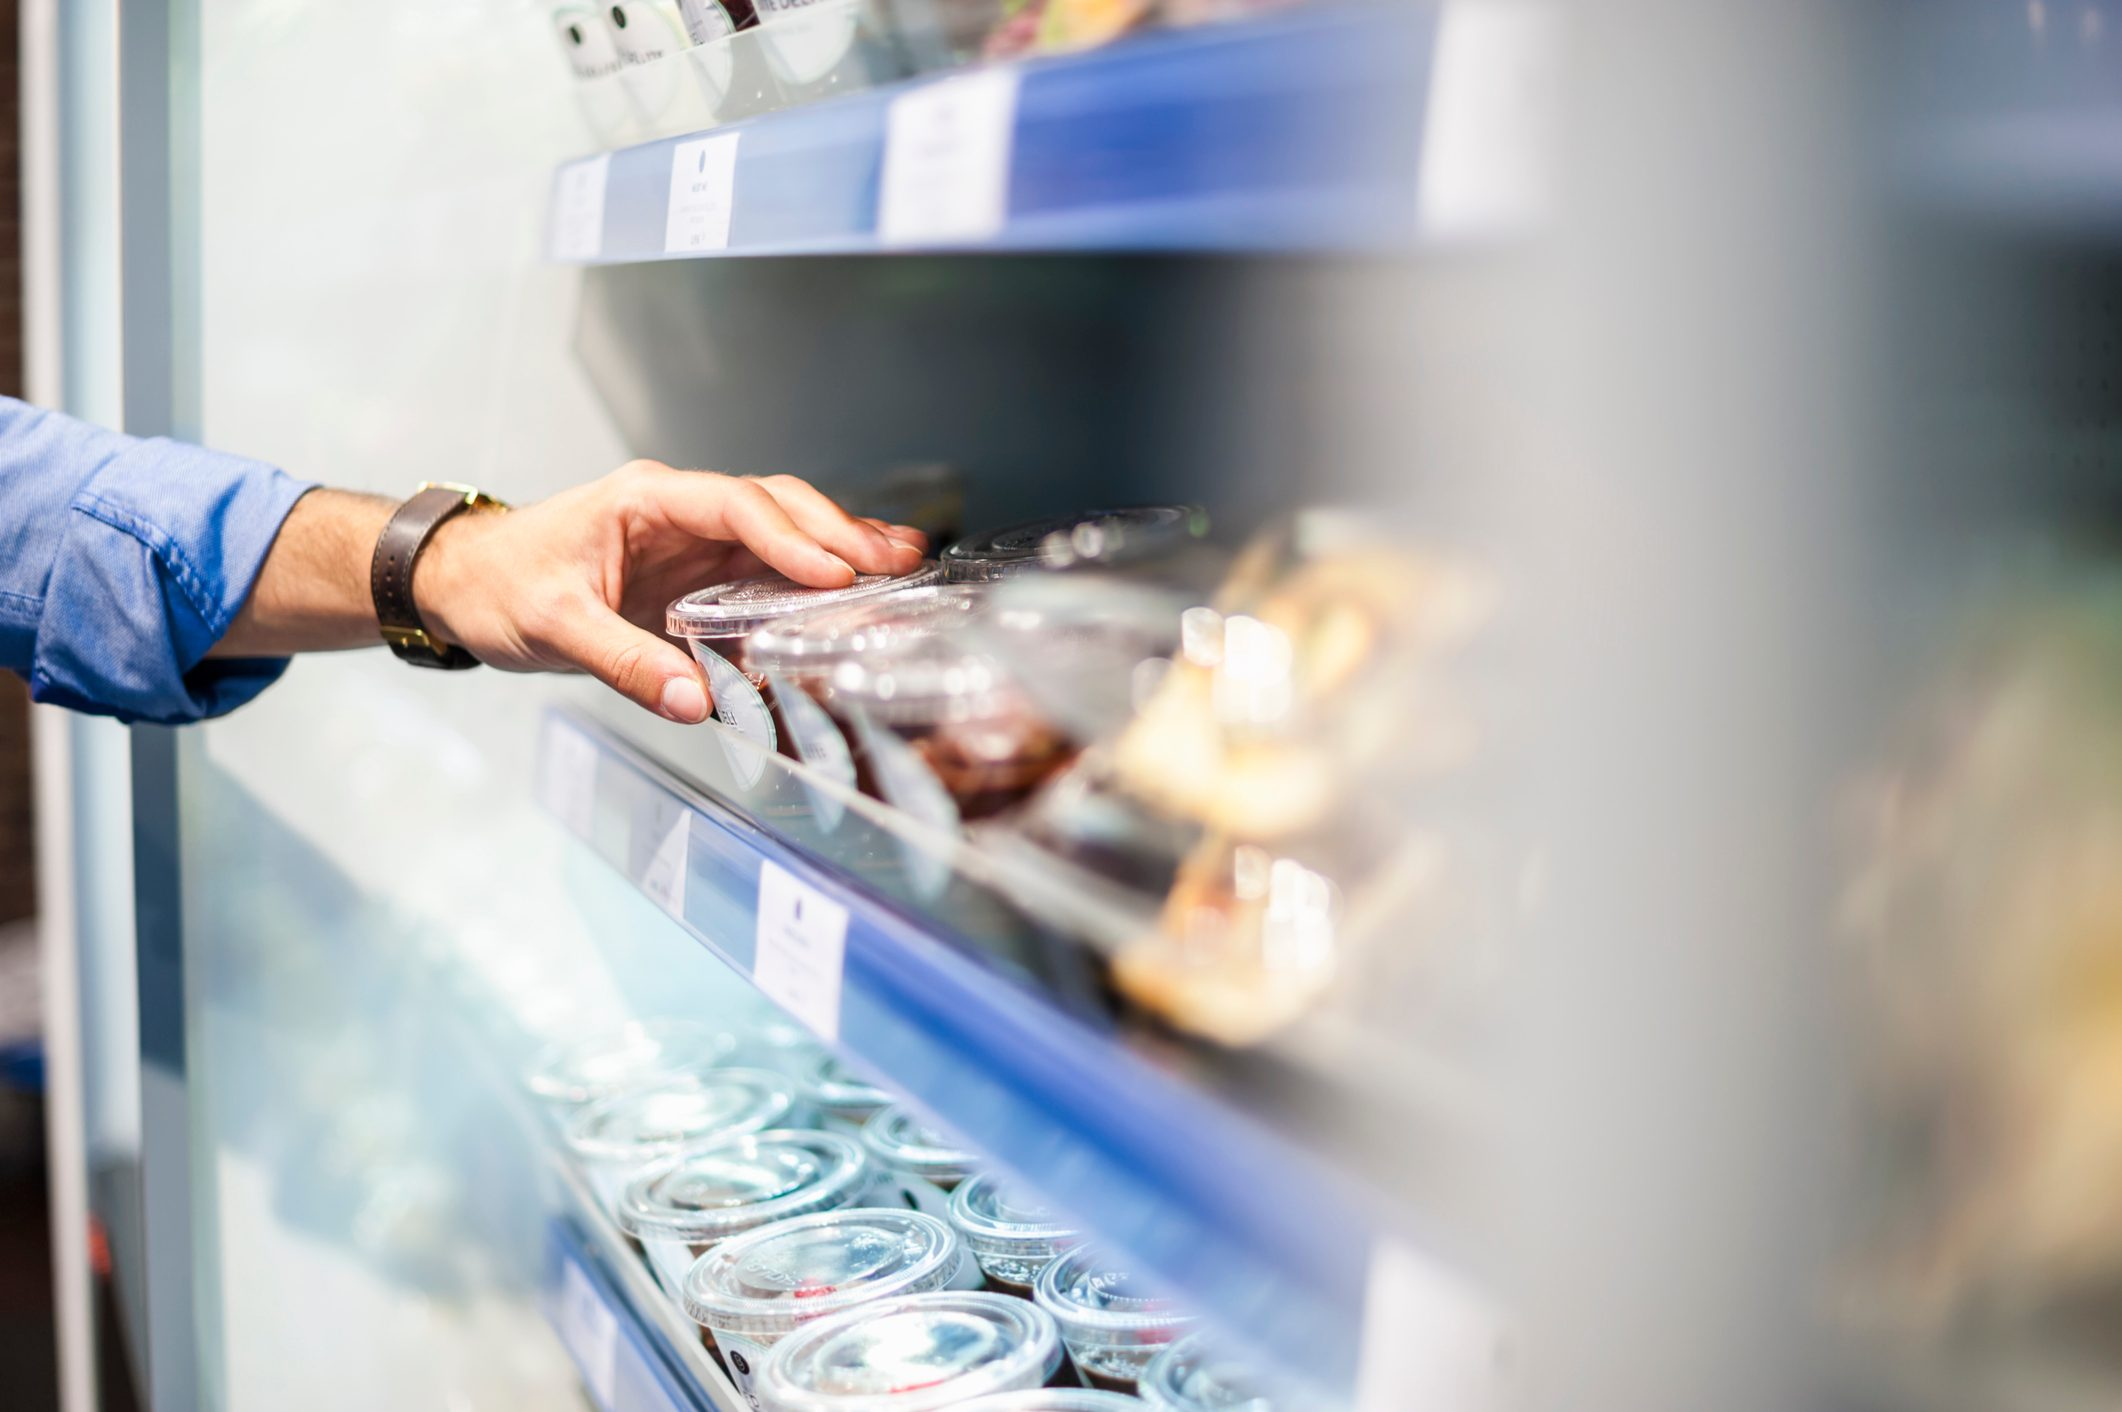 close up of man's hand taking food from shelf at the store